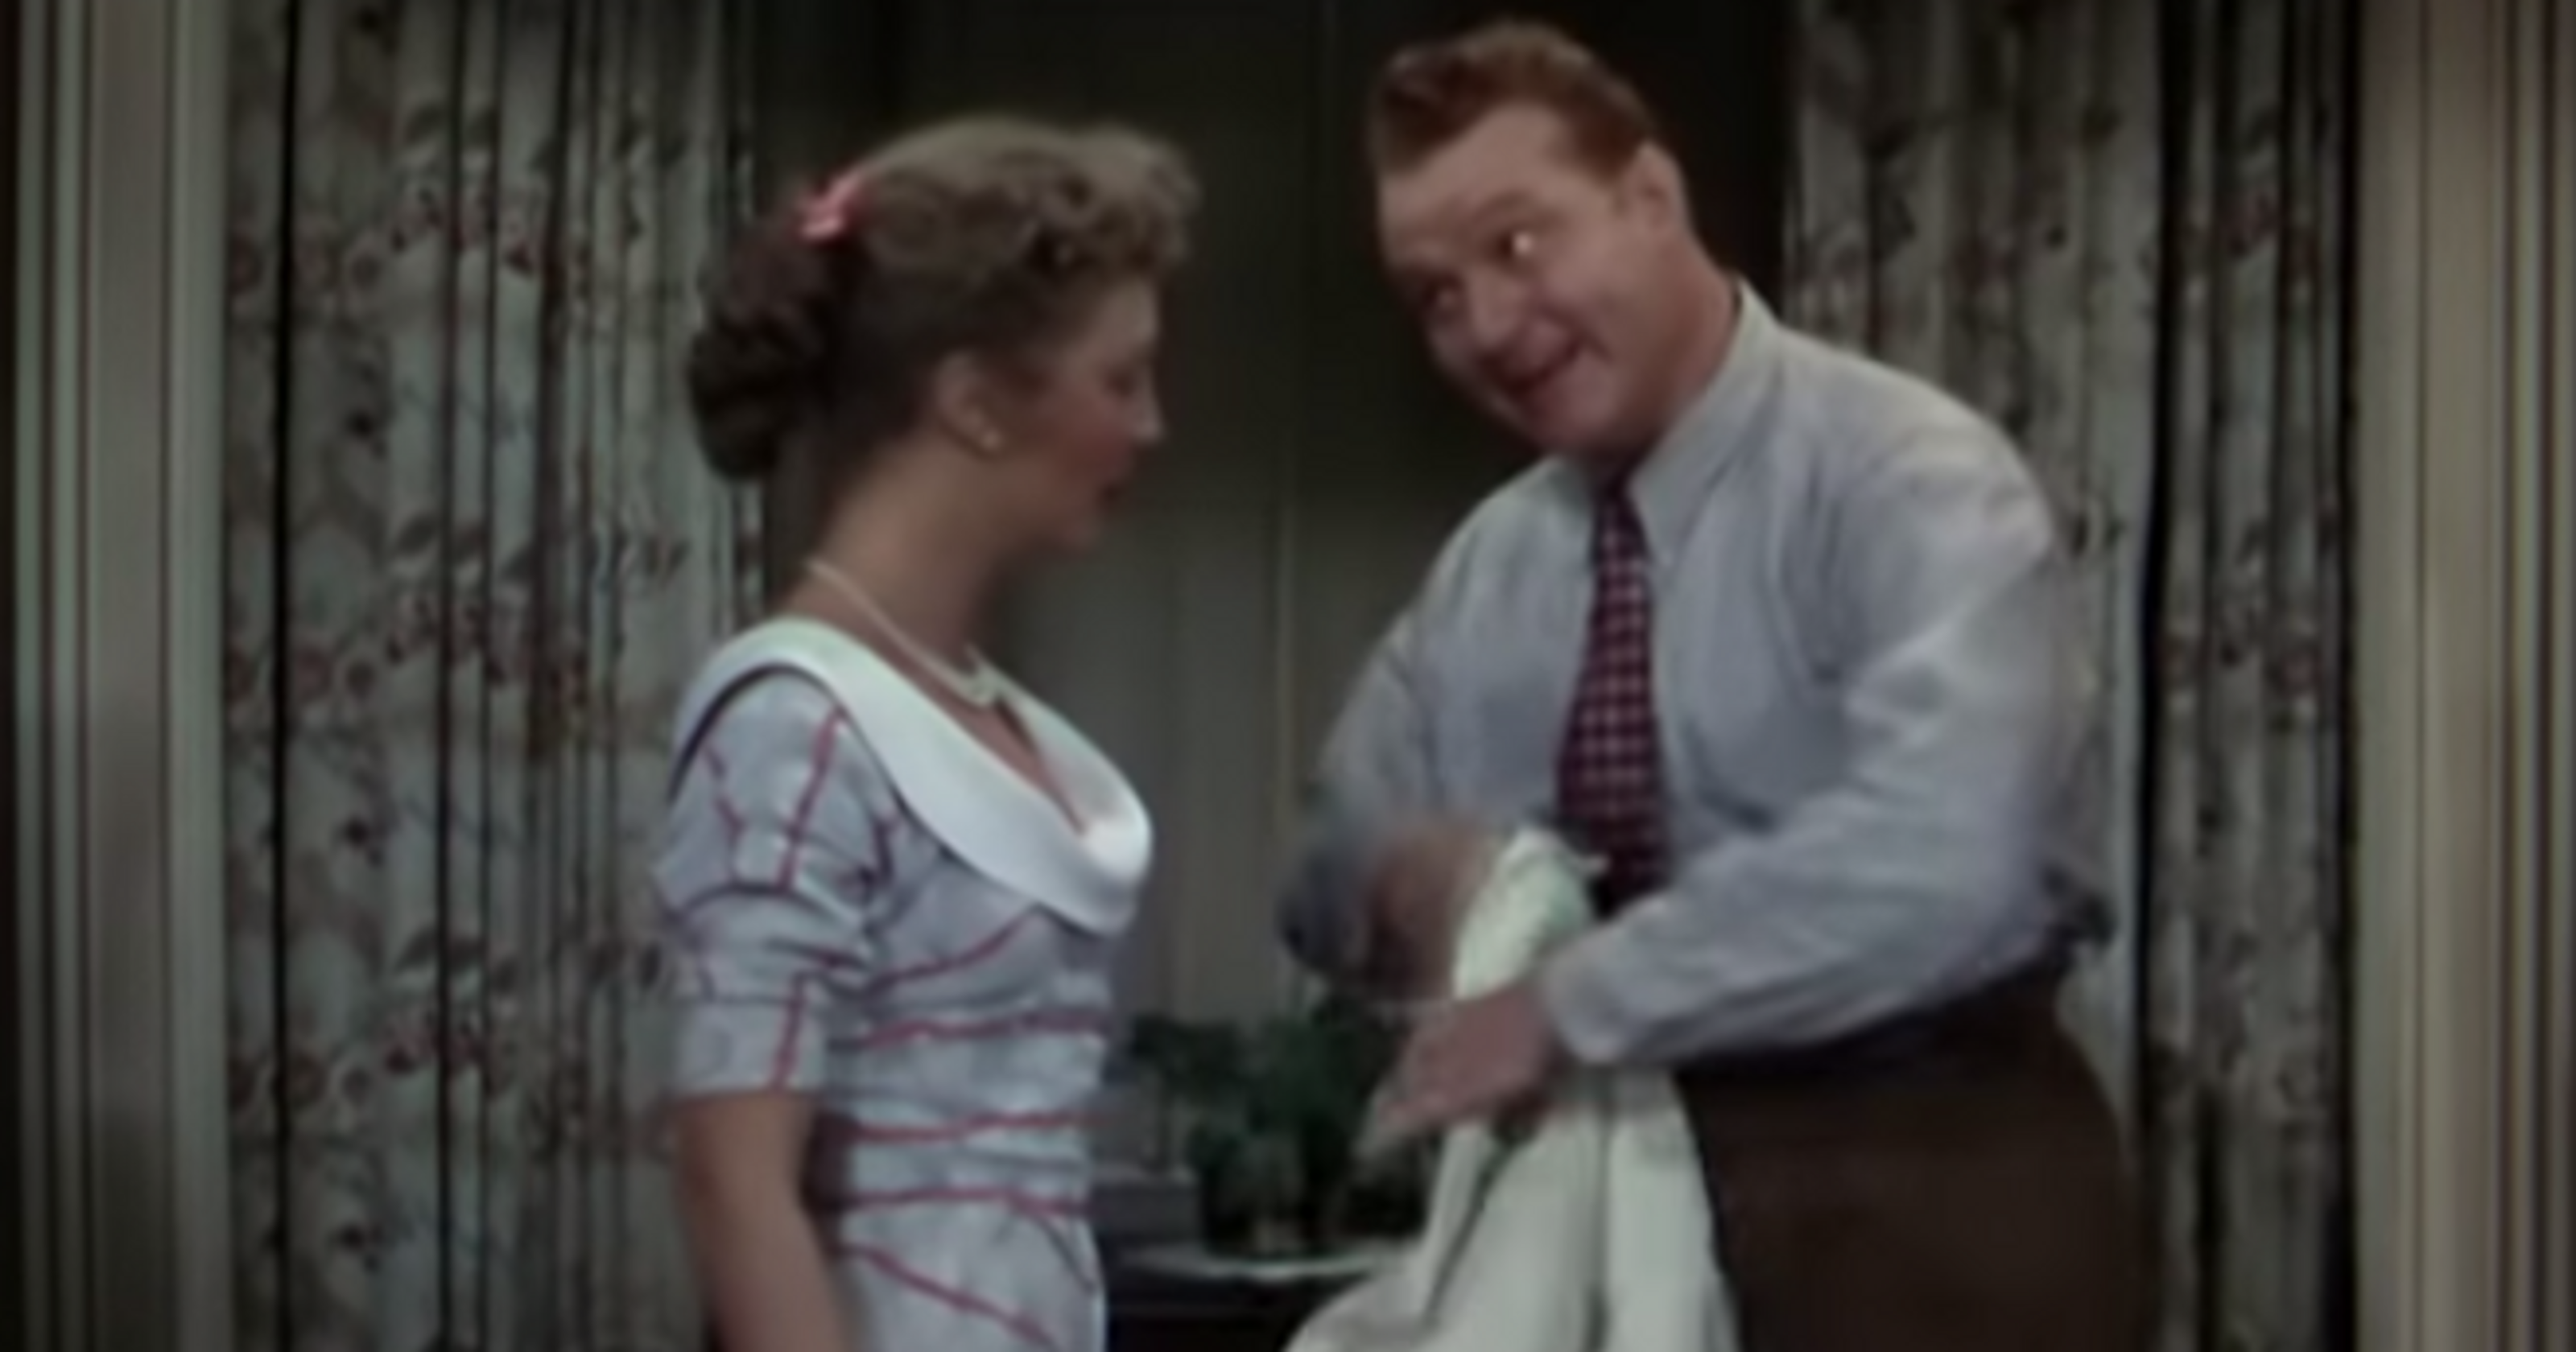 Radio station vows to play 'Baby, It's Cold Outside' on repeat